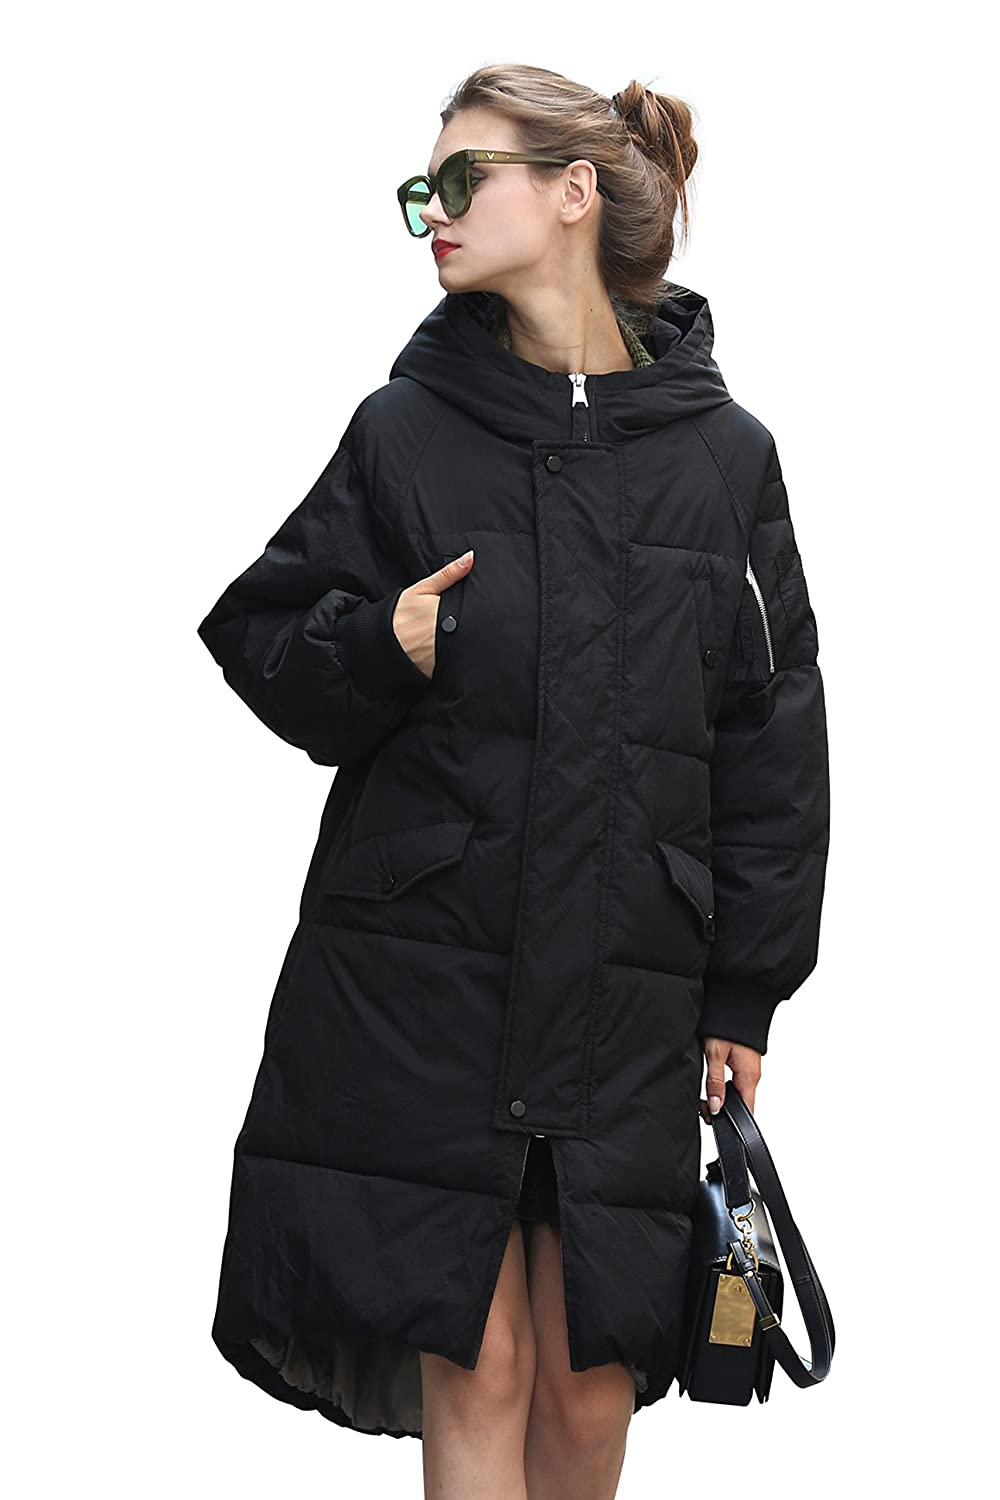 Amazon.com: Jacket Coat Women Winter Top Long Coat Women Winter Down Waterproof Jacket Women Lightweight Puffer Spring Jacket Women Snow Long Sleeve Jacket ...